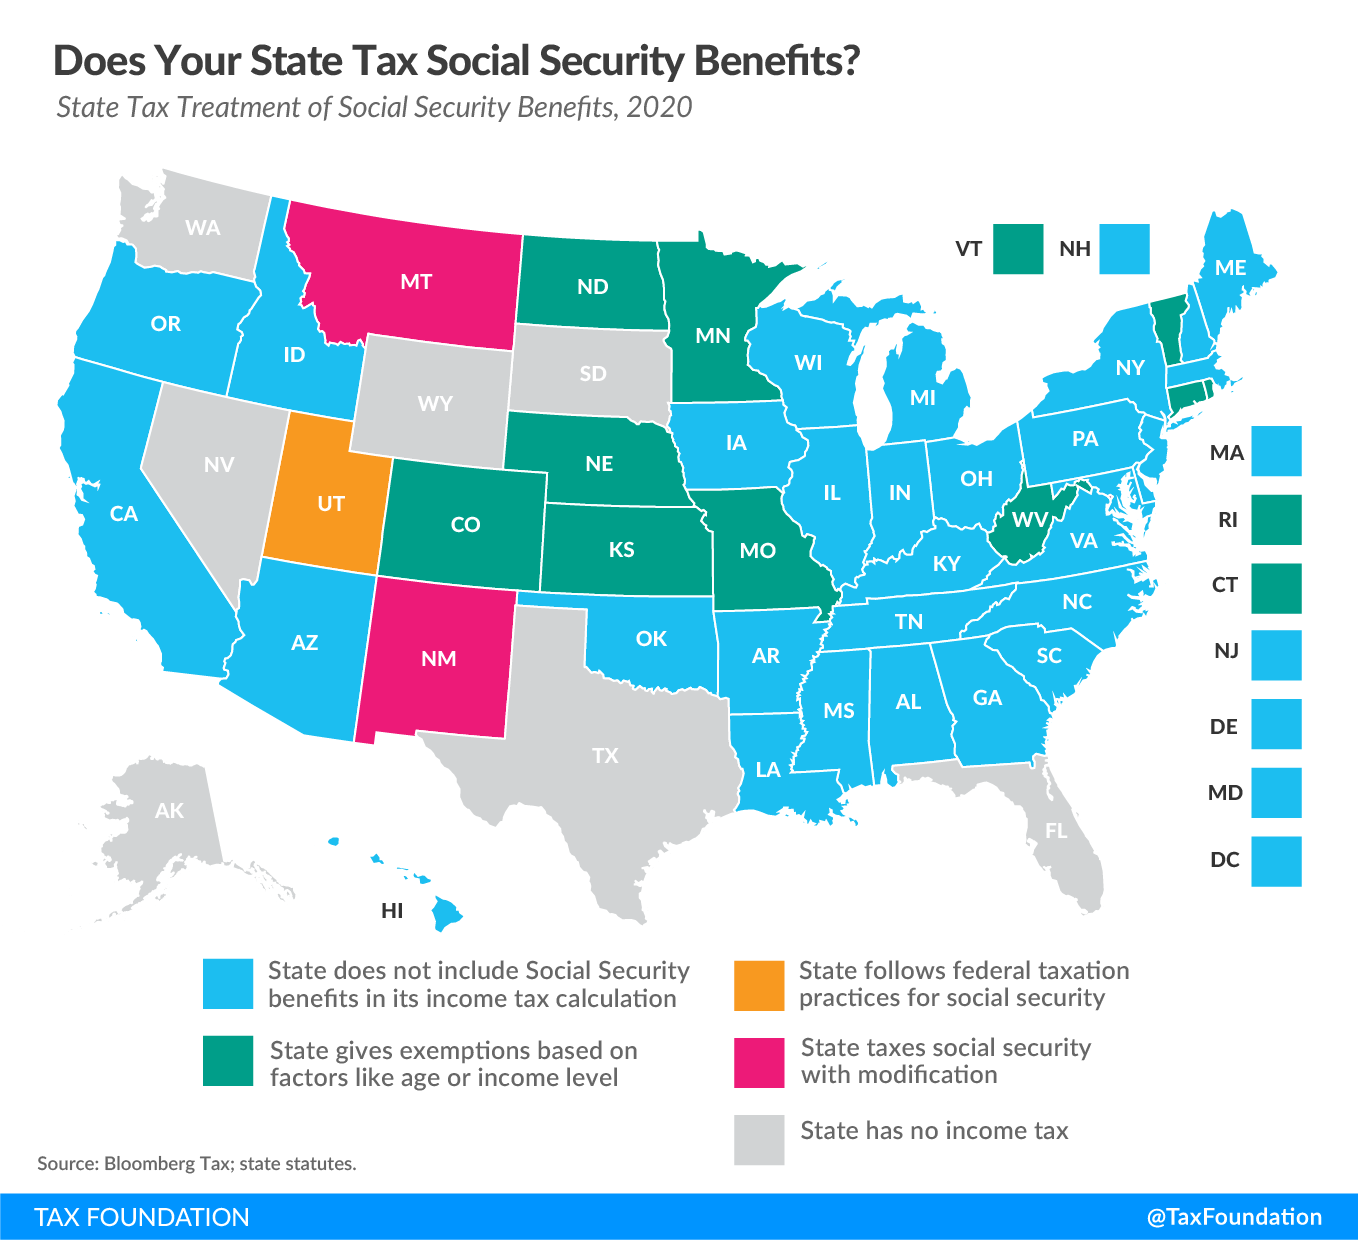 Does my state tax social security benefits? States that tax social security benefits